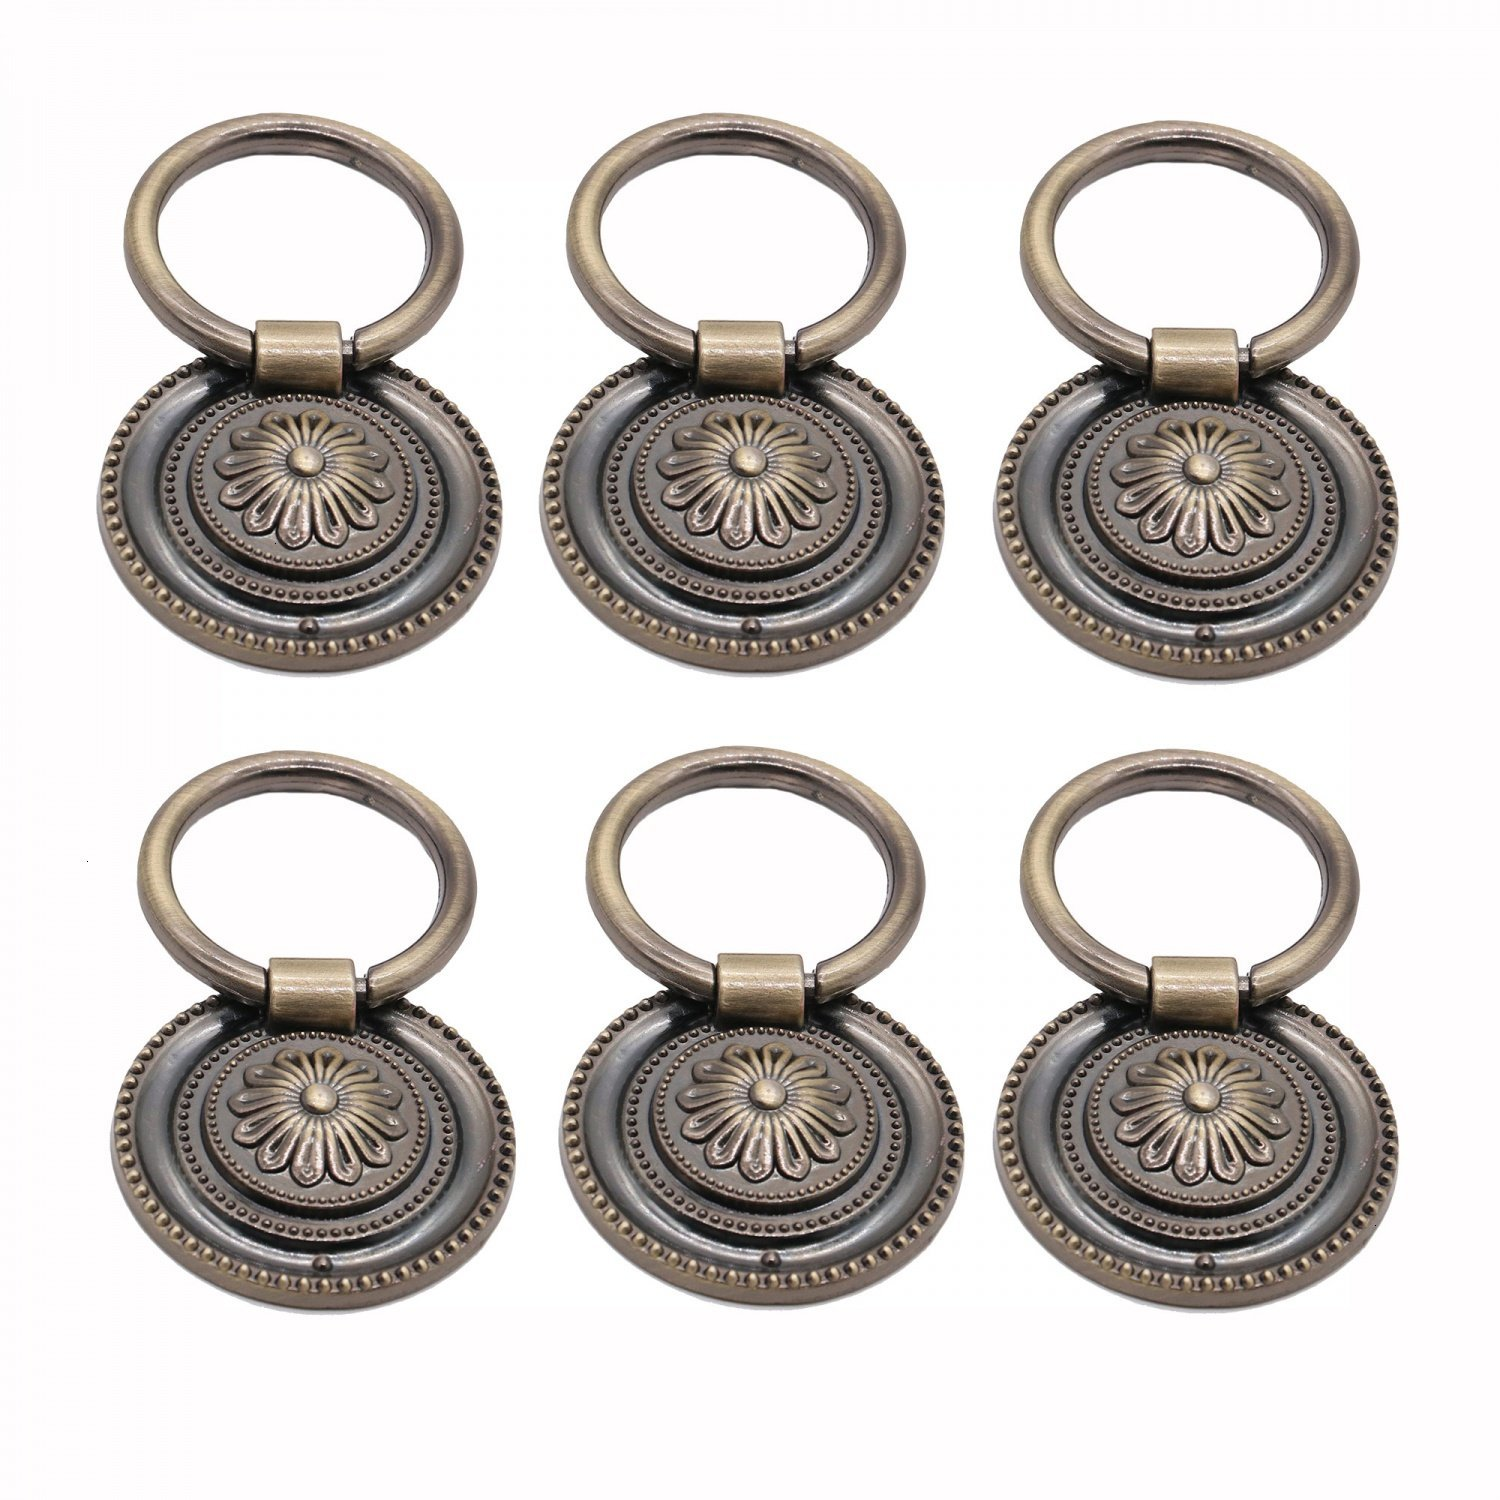 WEFOO 6pcs Kitchen Replacement Antique Copper Cabinet Cupboard Pulls Drawer Dresser Ring Handle Knob